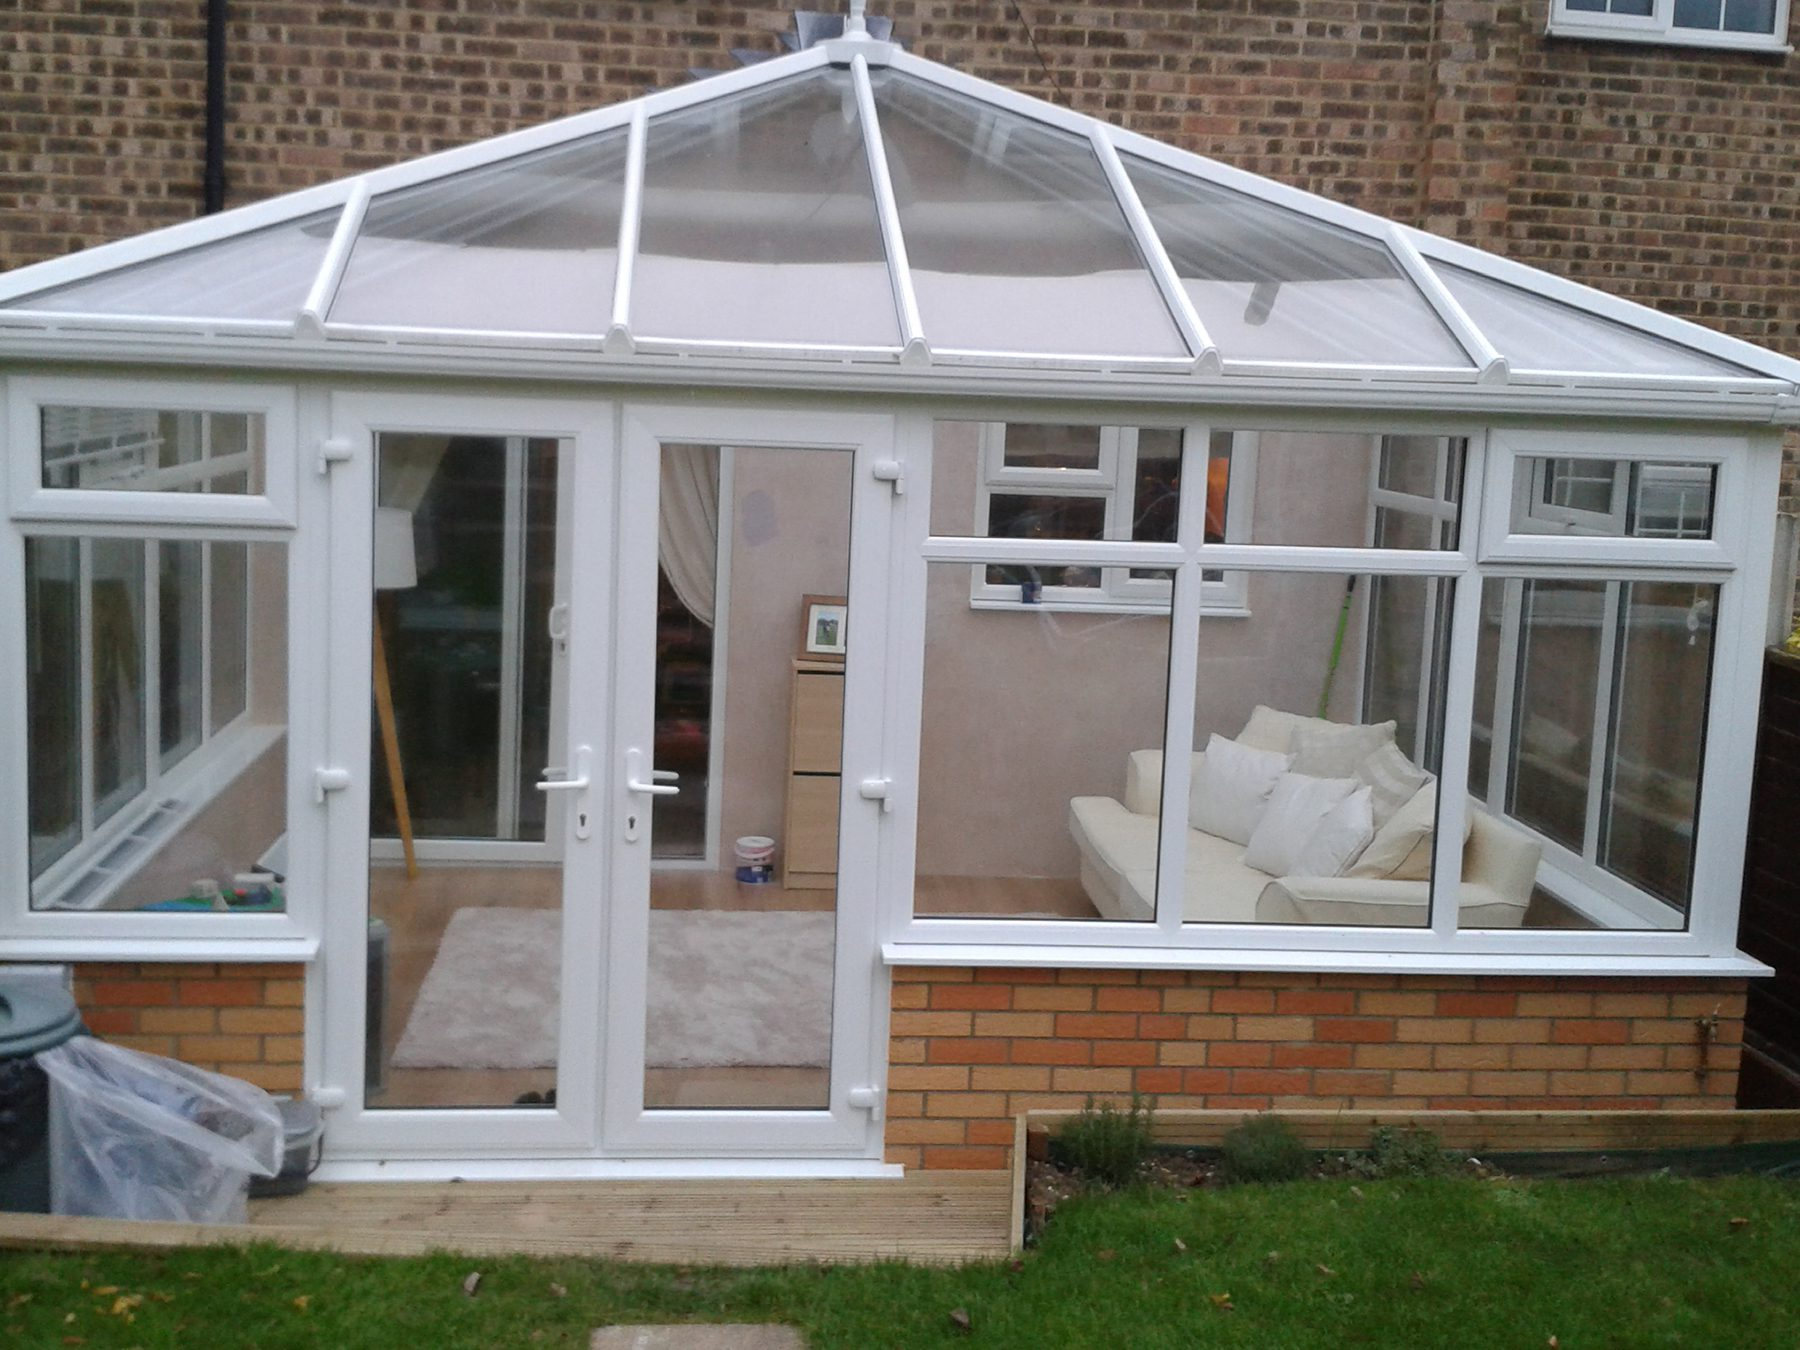 diy conservatories claire hale review image